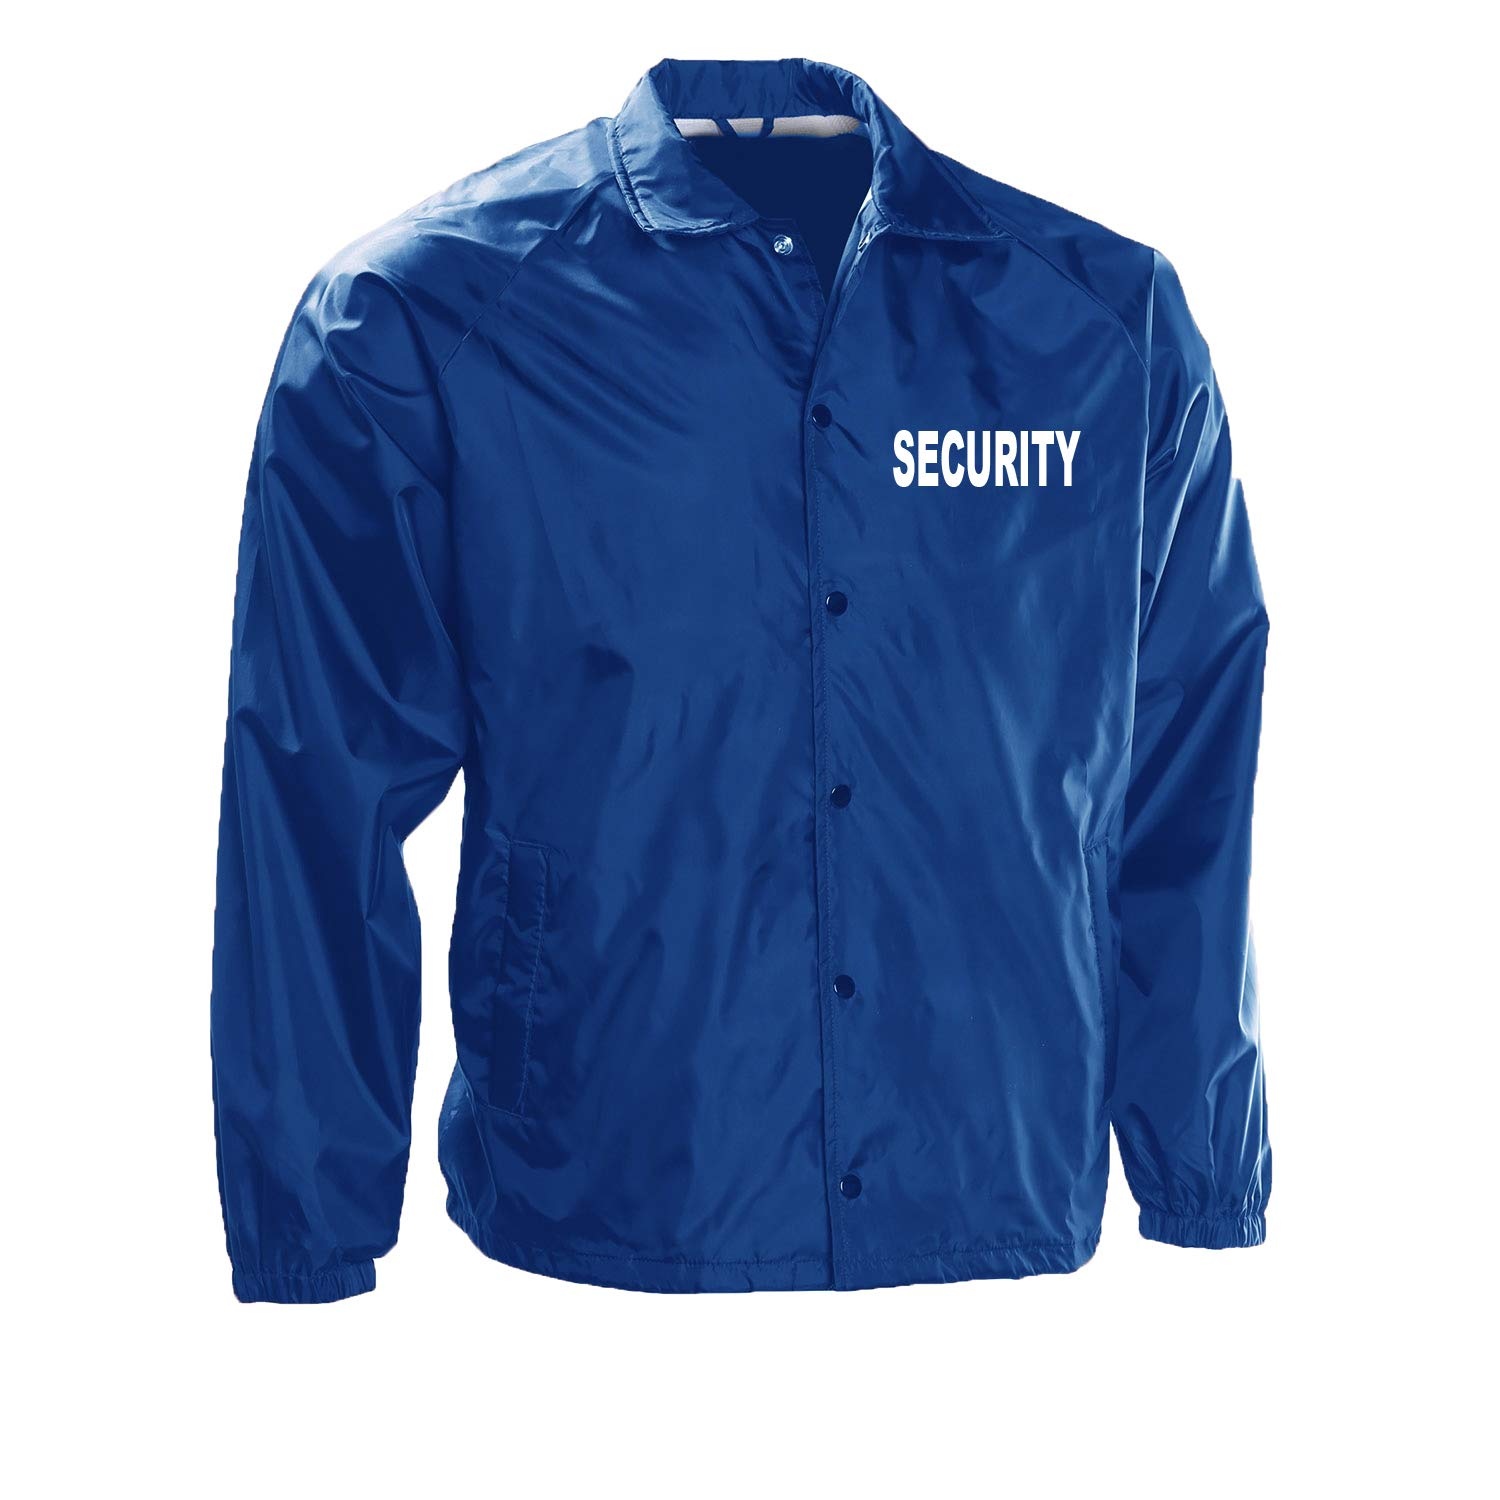 Choice4ever VOS Security 100% Taffeta Nylon Water Resistant Lightweight Windbreaker